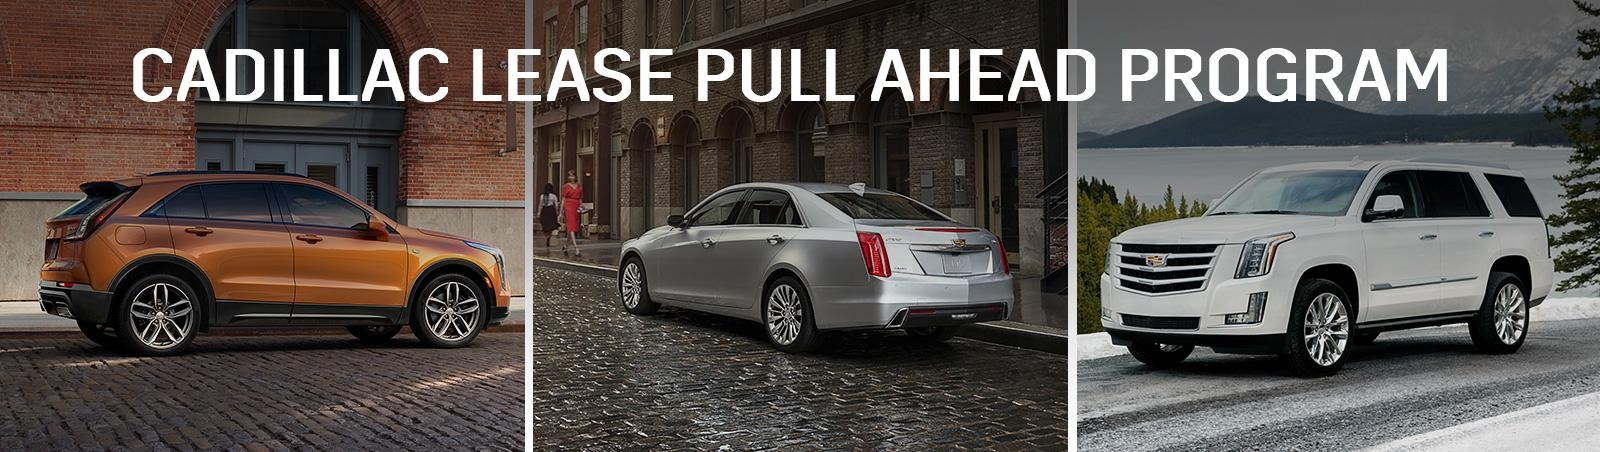 brotherton cadillac is a seattle cadillac dealer and a new Cadillac Pull Ahead Program